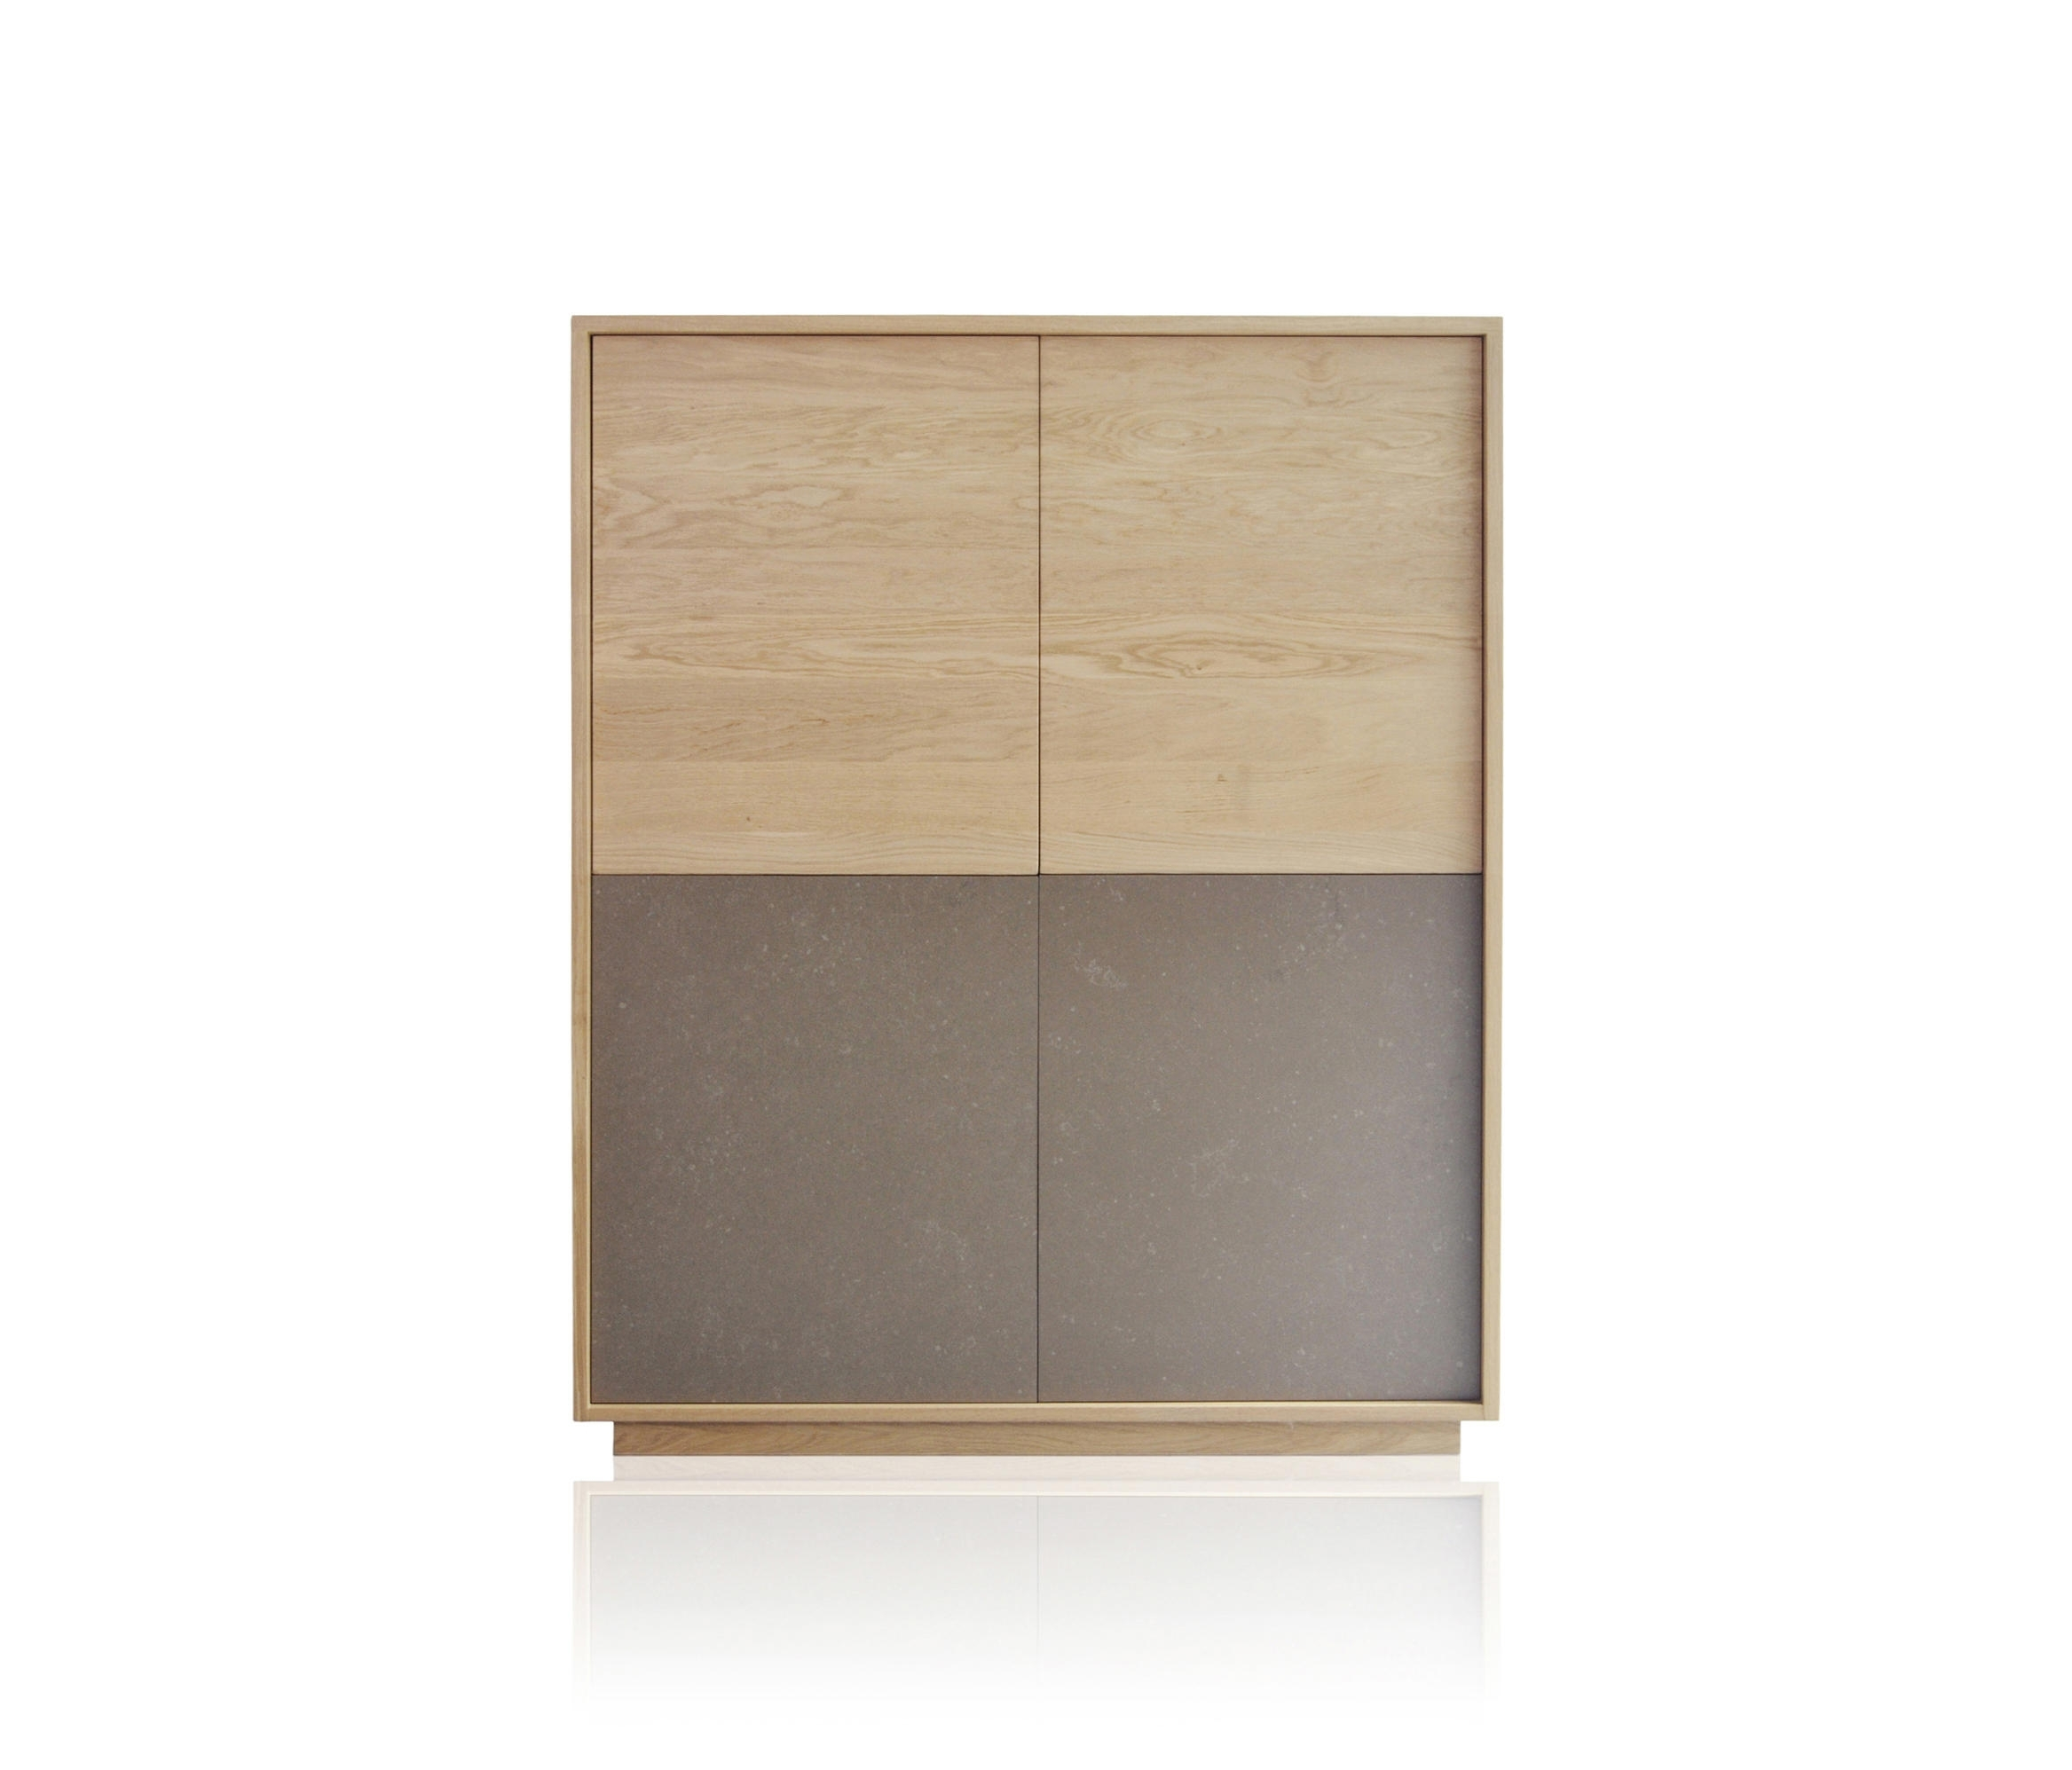 Basic 4 Door Module - Sideboards From Expormim | Architonic throughout 4 Door Wood Squares Sideboards (Image 3 of 30)